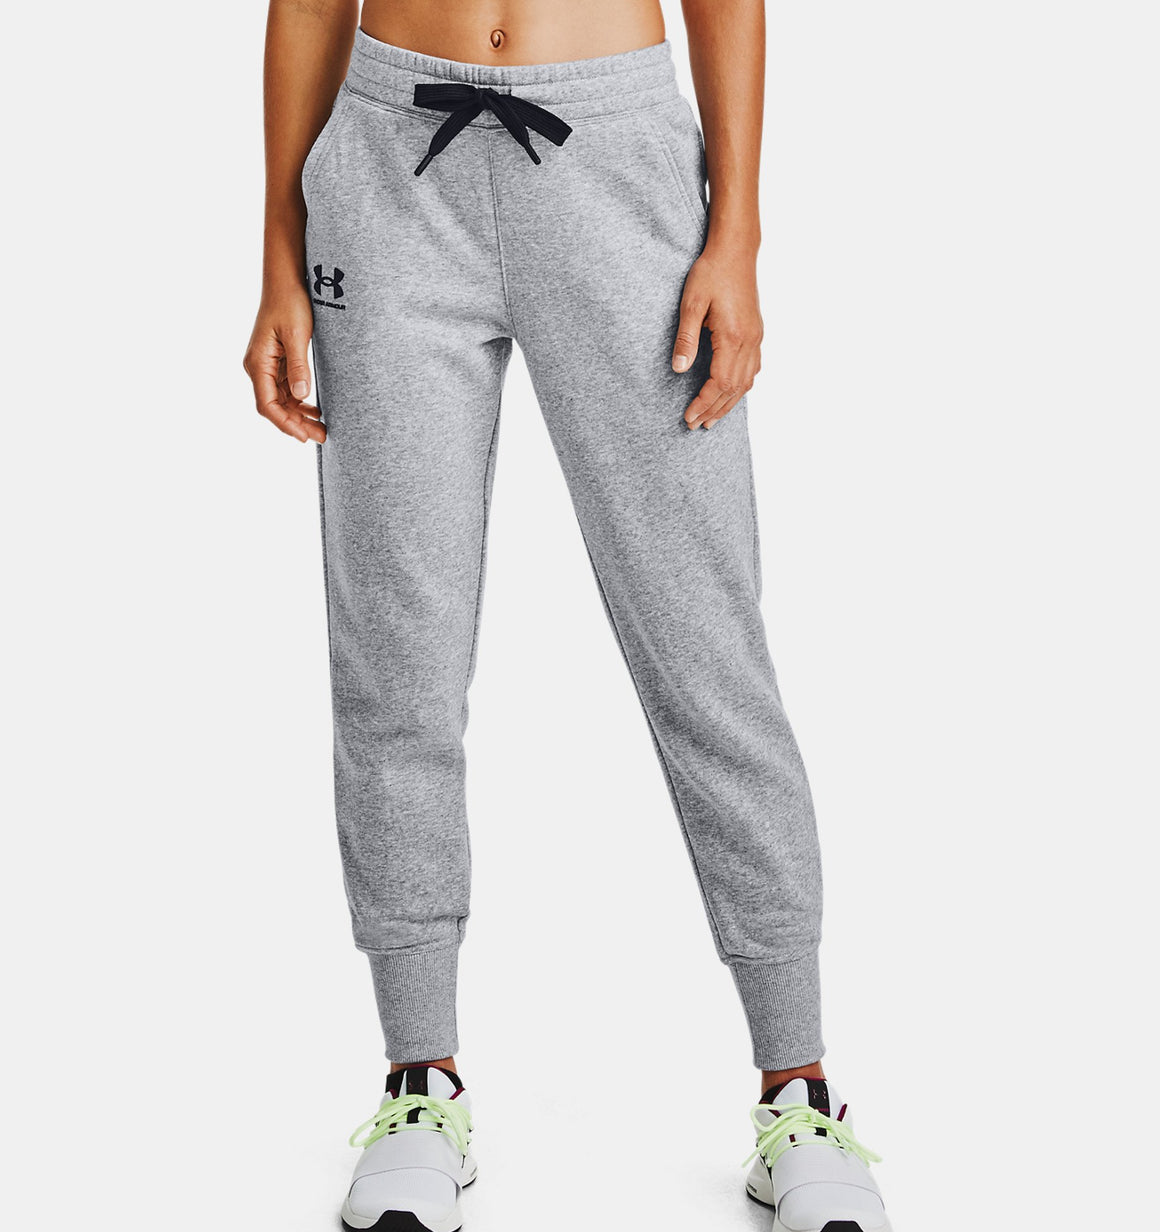 Under Armour Women's Rival Fleece Joggers